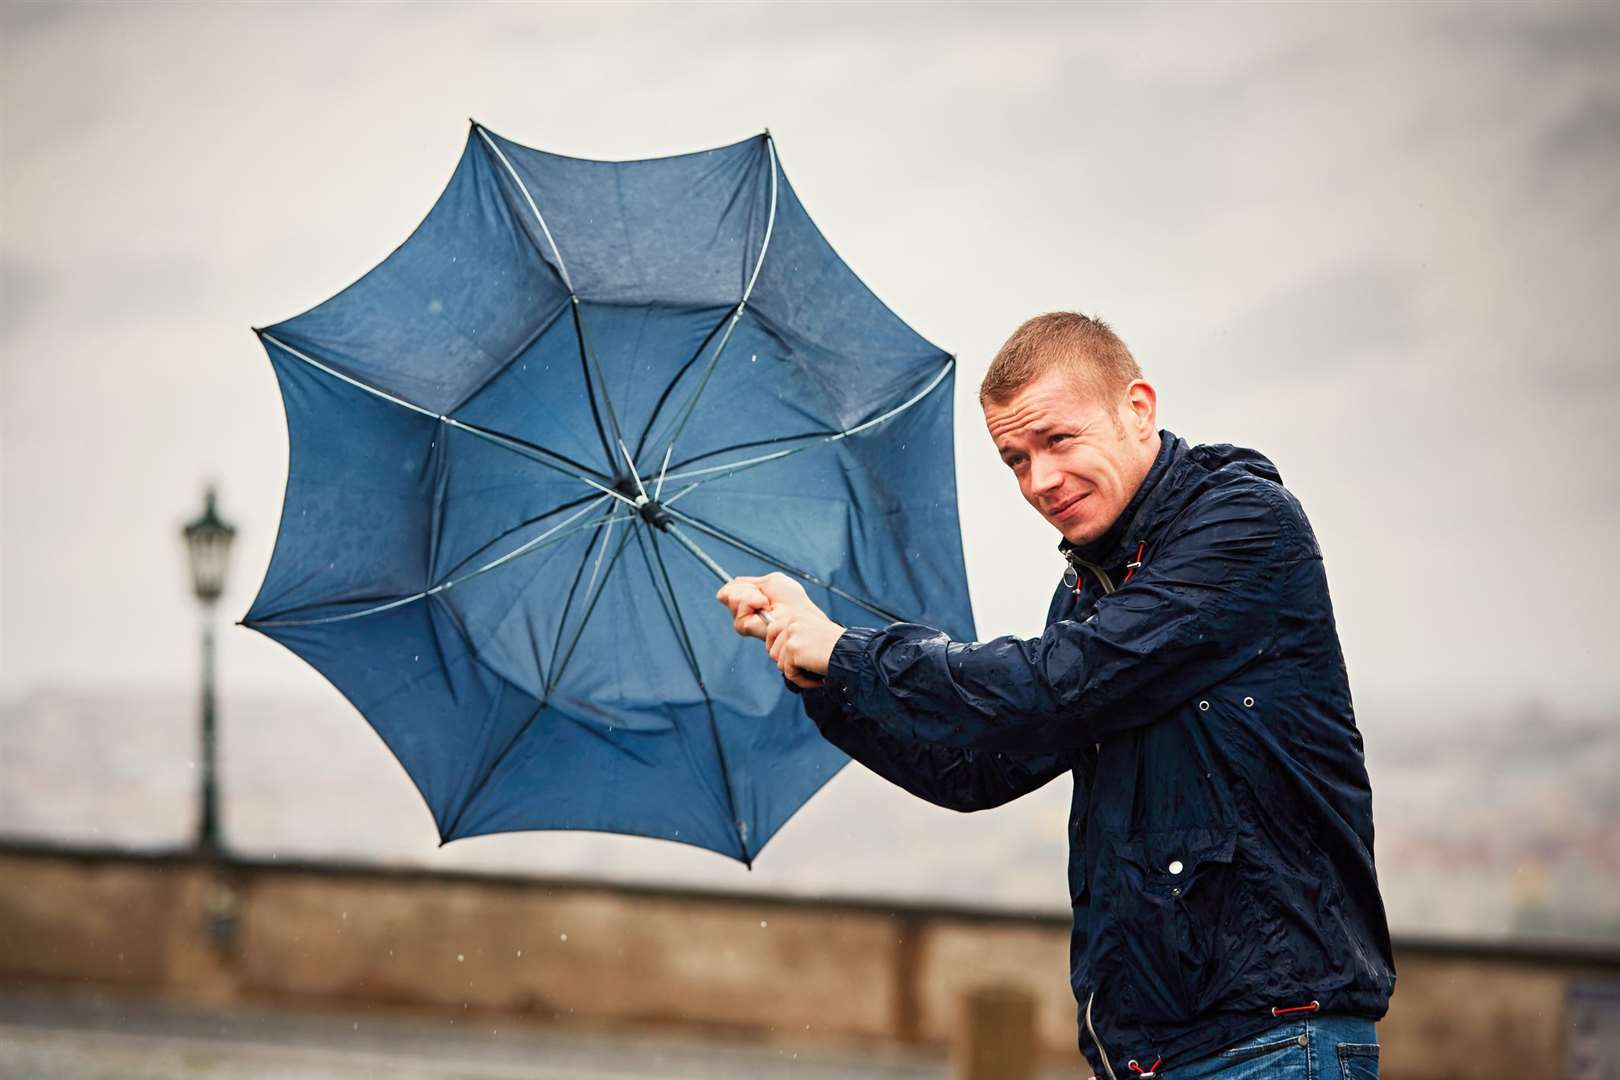 Umbrellas could be ruined later as strong winds hit Kent. Stock image